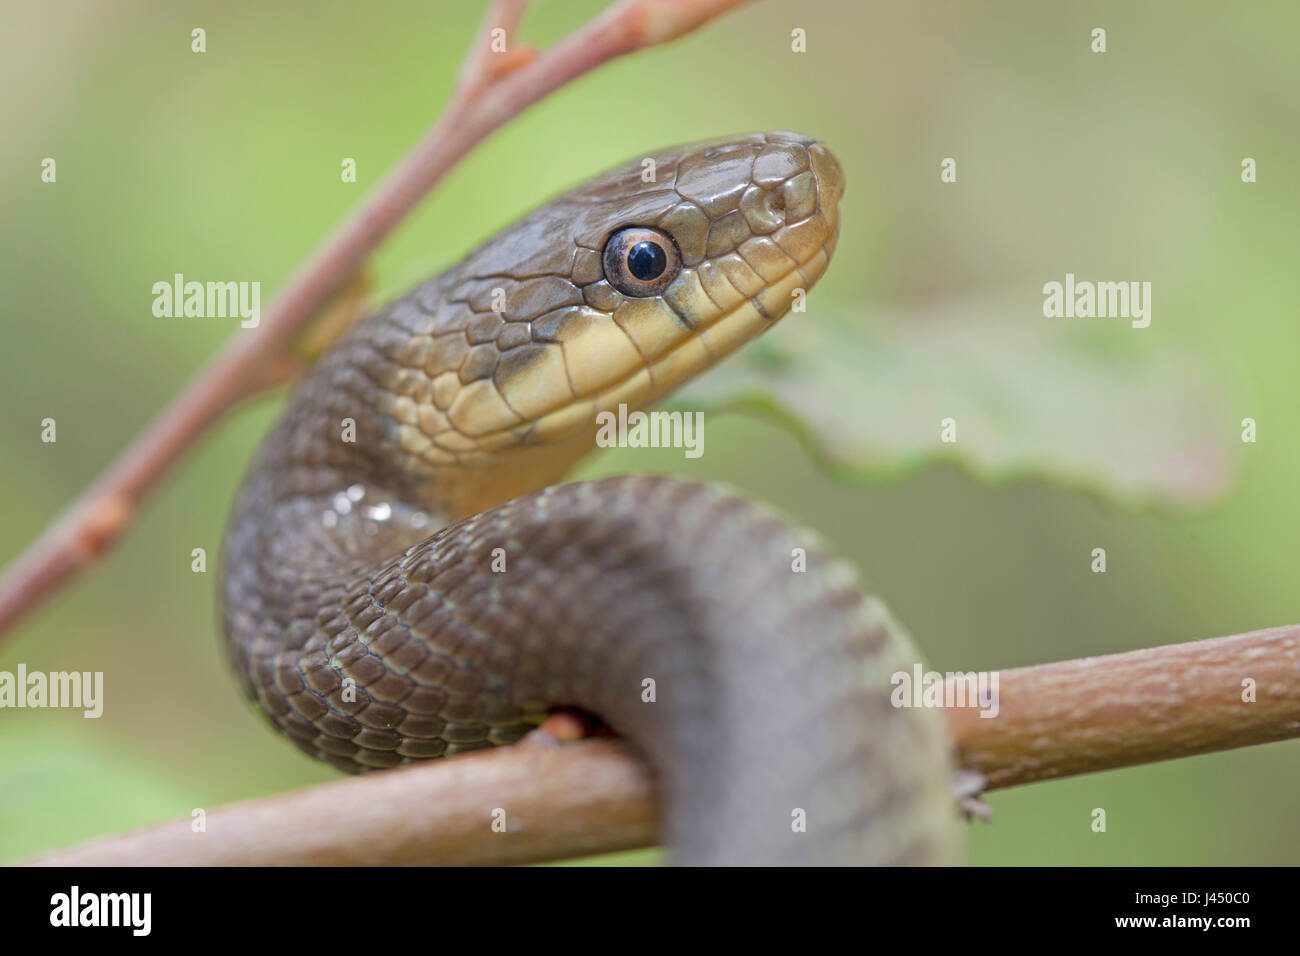 photo of an Aesculapian snake climbing in a tree - Stock Image